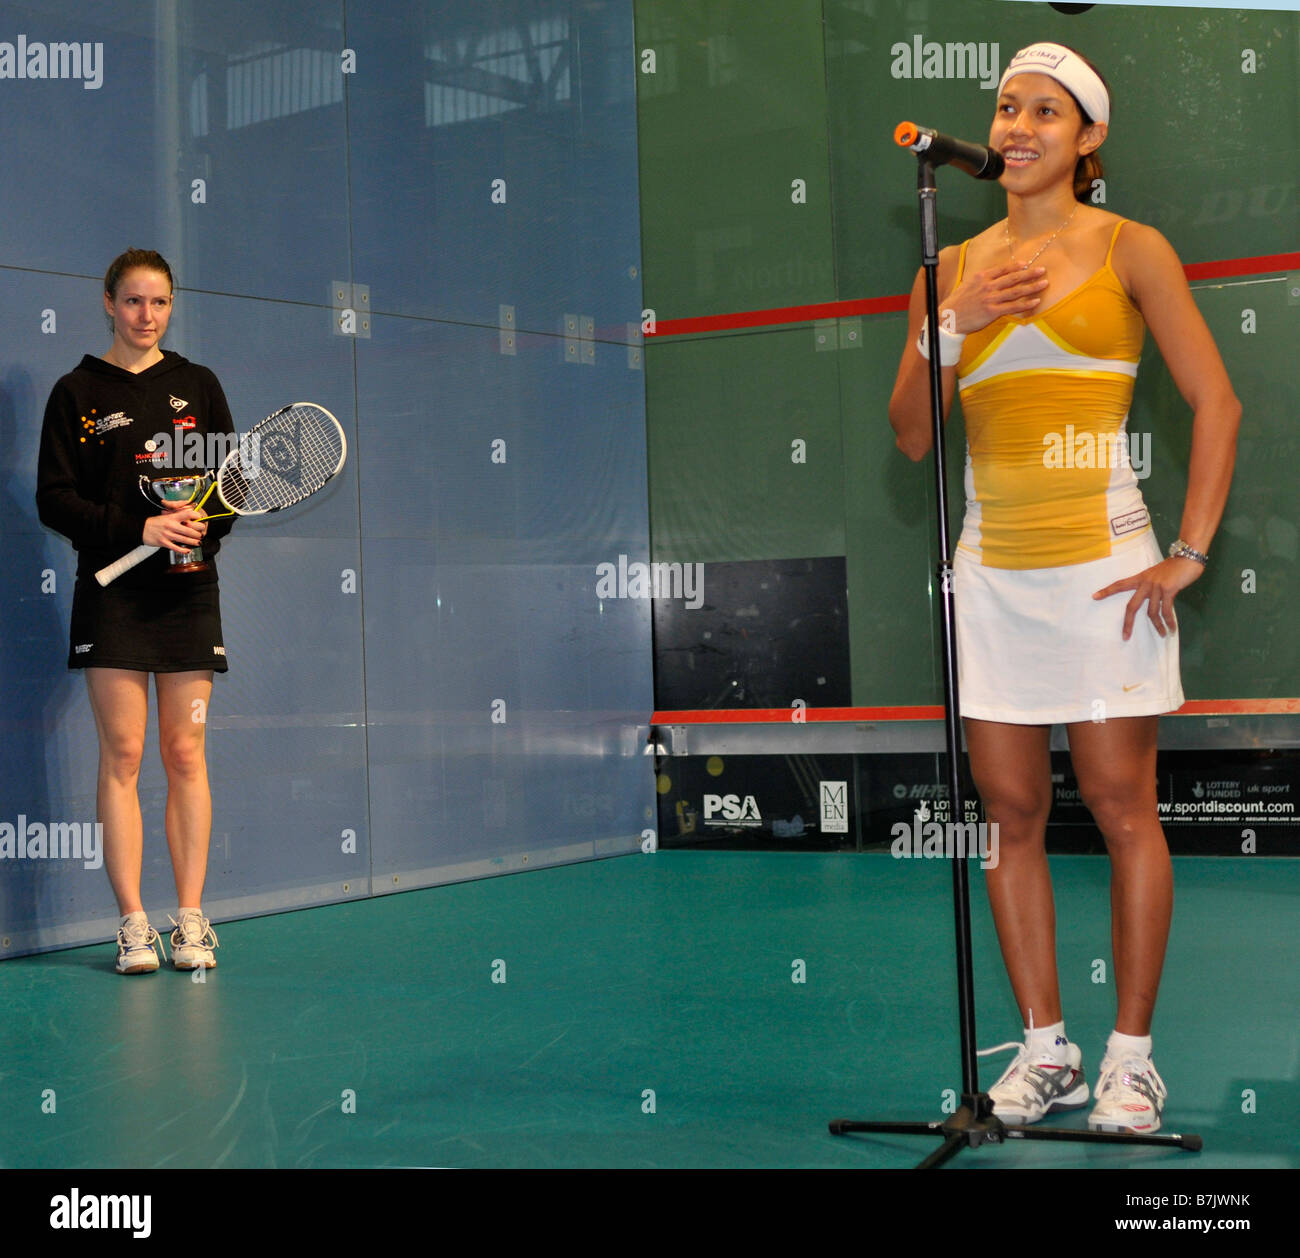 Nicol David addresses the audience after beating Vicky Botwright to win the 2008 World Squash Championships in Manchester - Stock Image